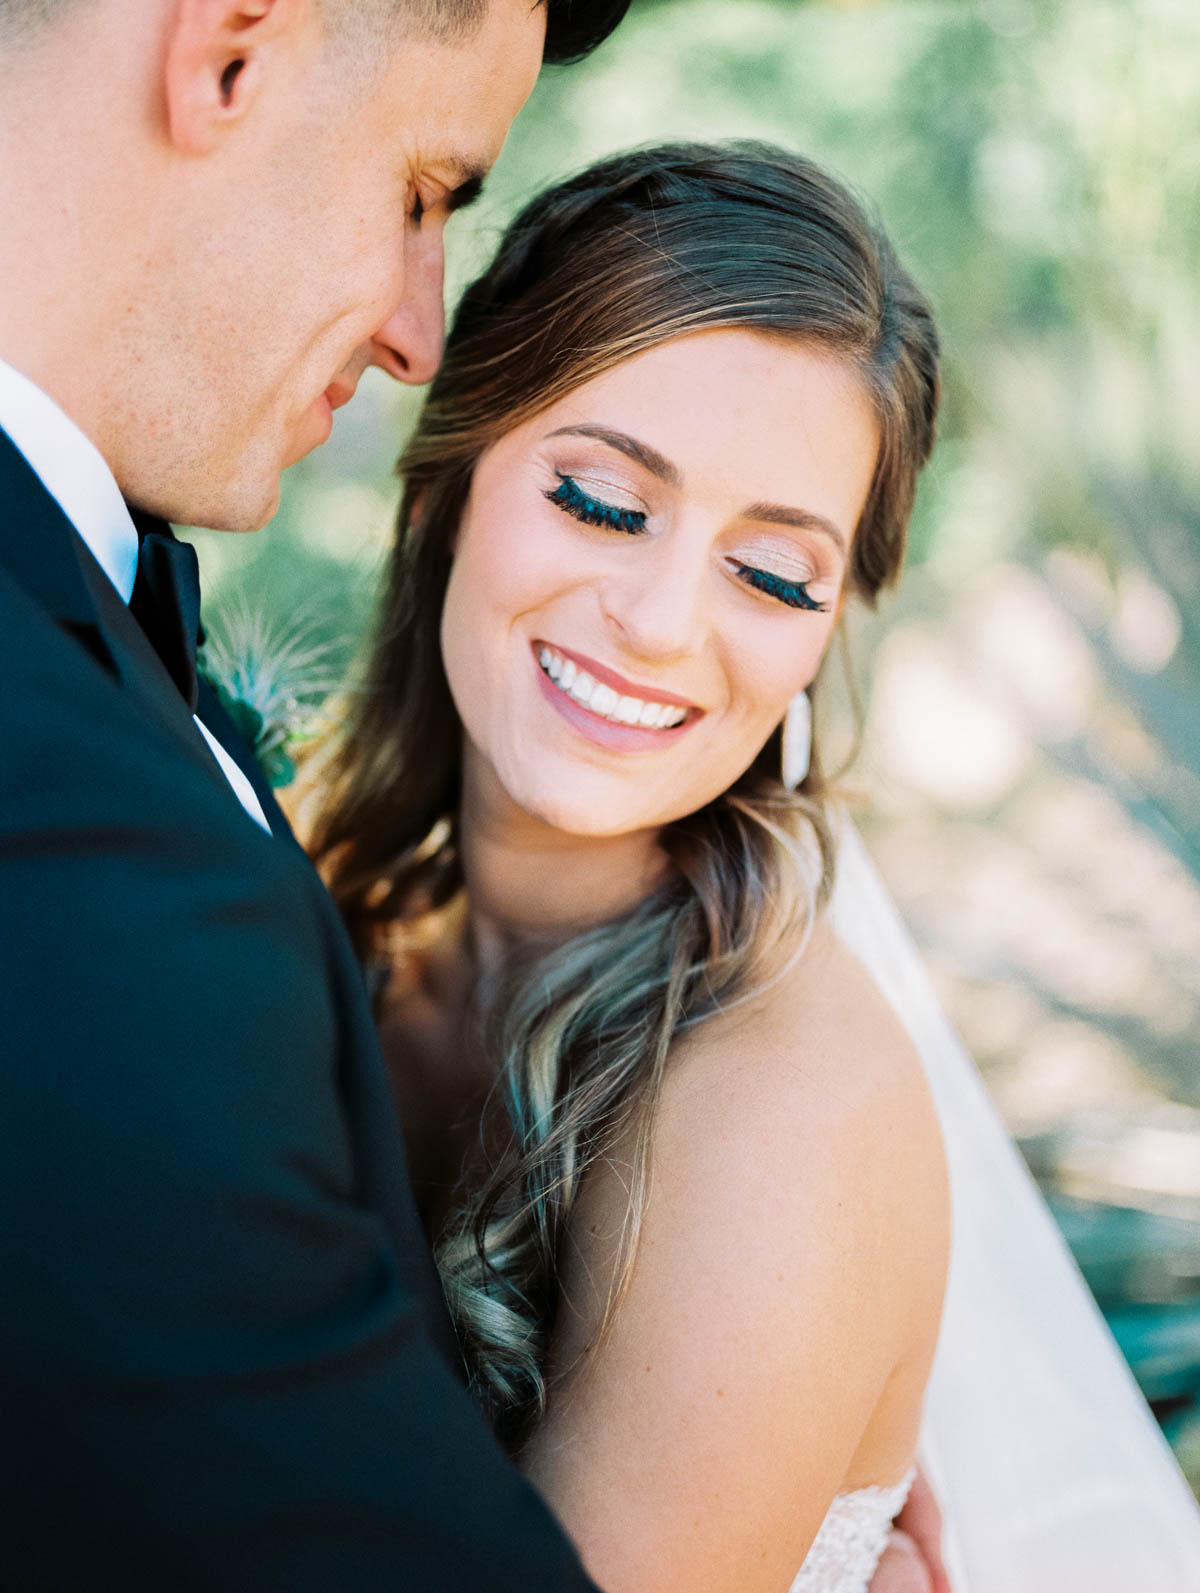 Smiling bride captured by Tucson Wedding Photographers Betsy & John